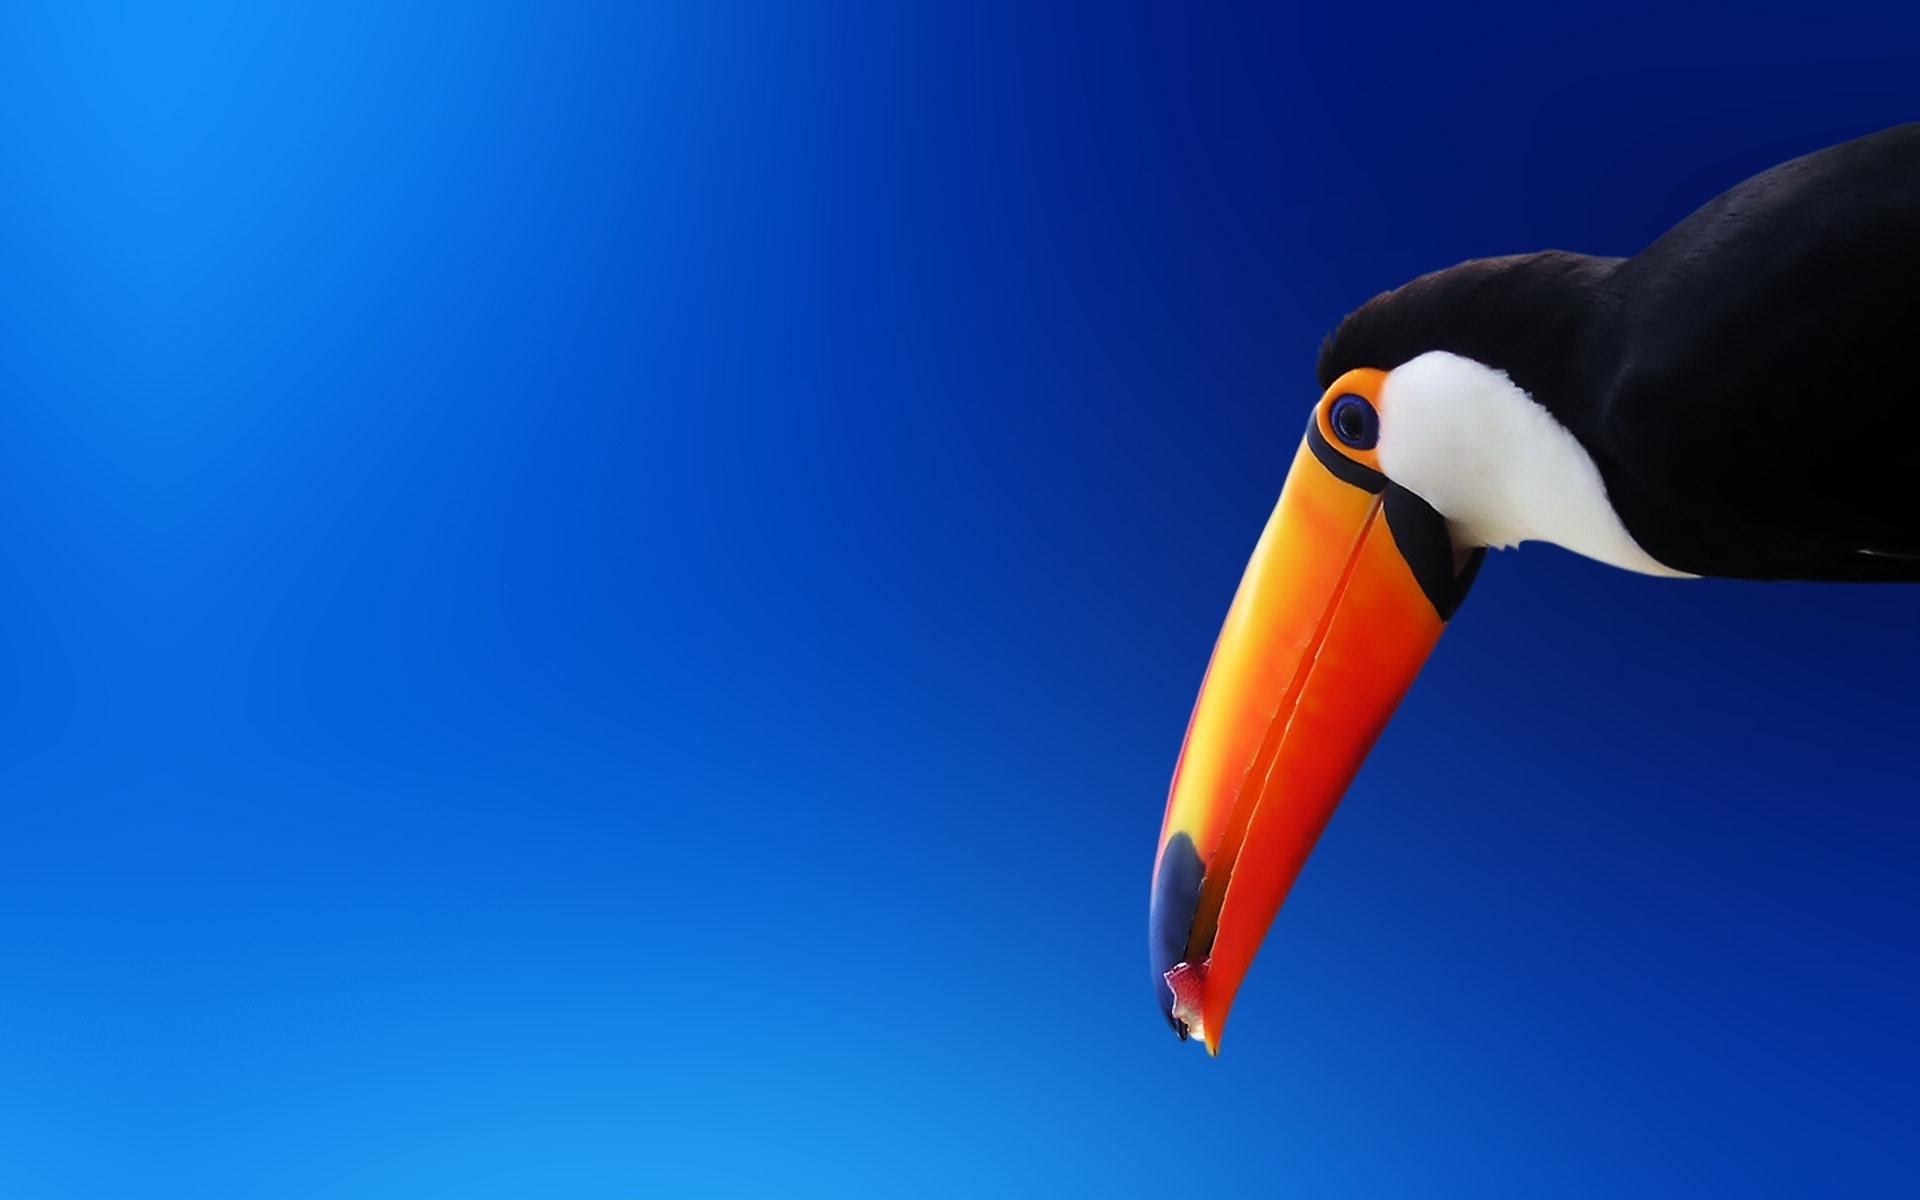 Toucan on a blue background